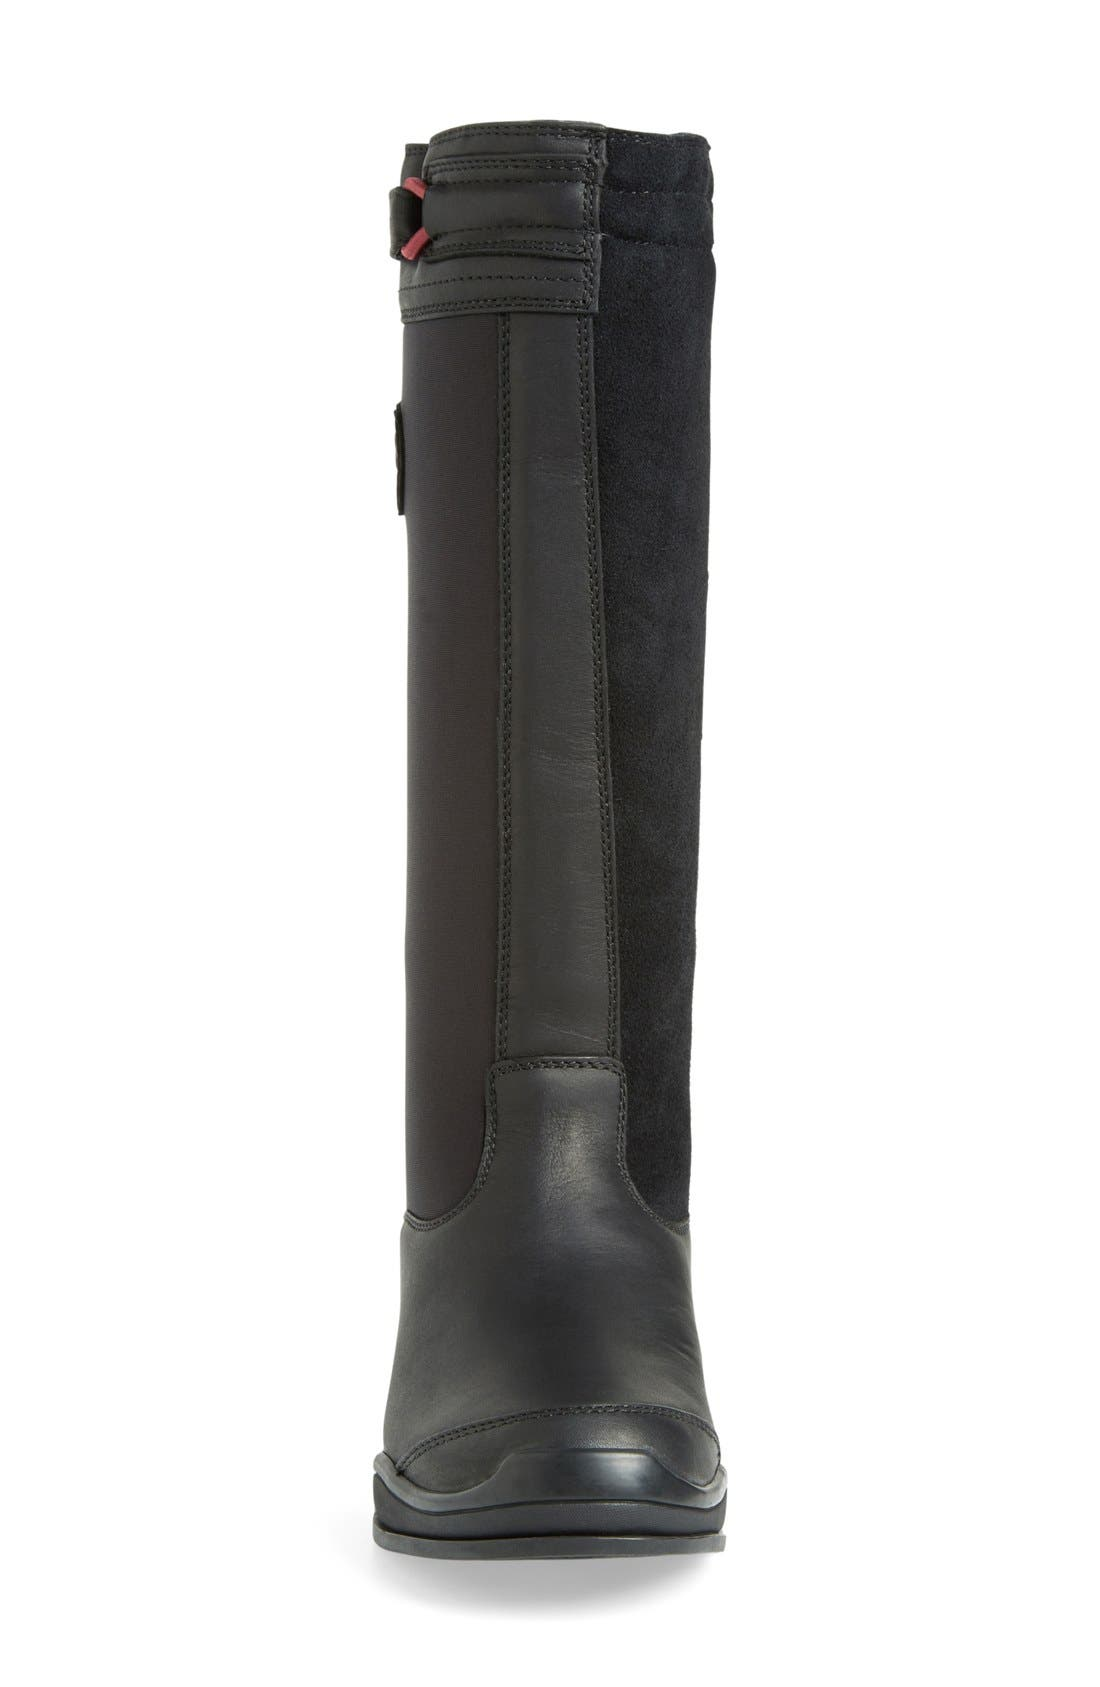 ARIAT,                             'Extreme H20' Waterproof Boot,                             Alternate thumbnail 4, color,                             001